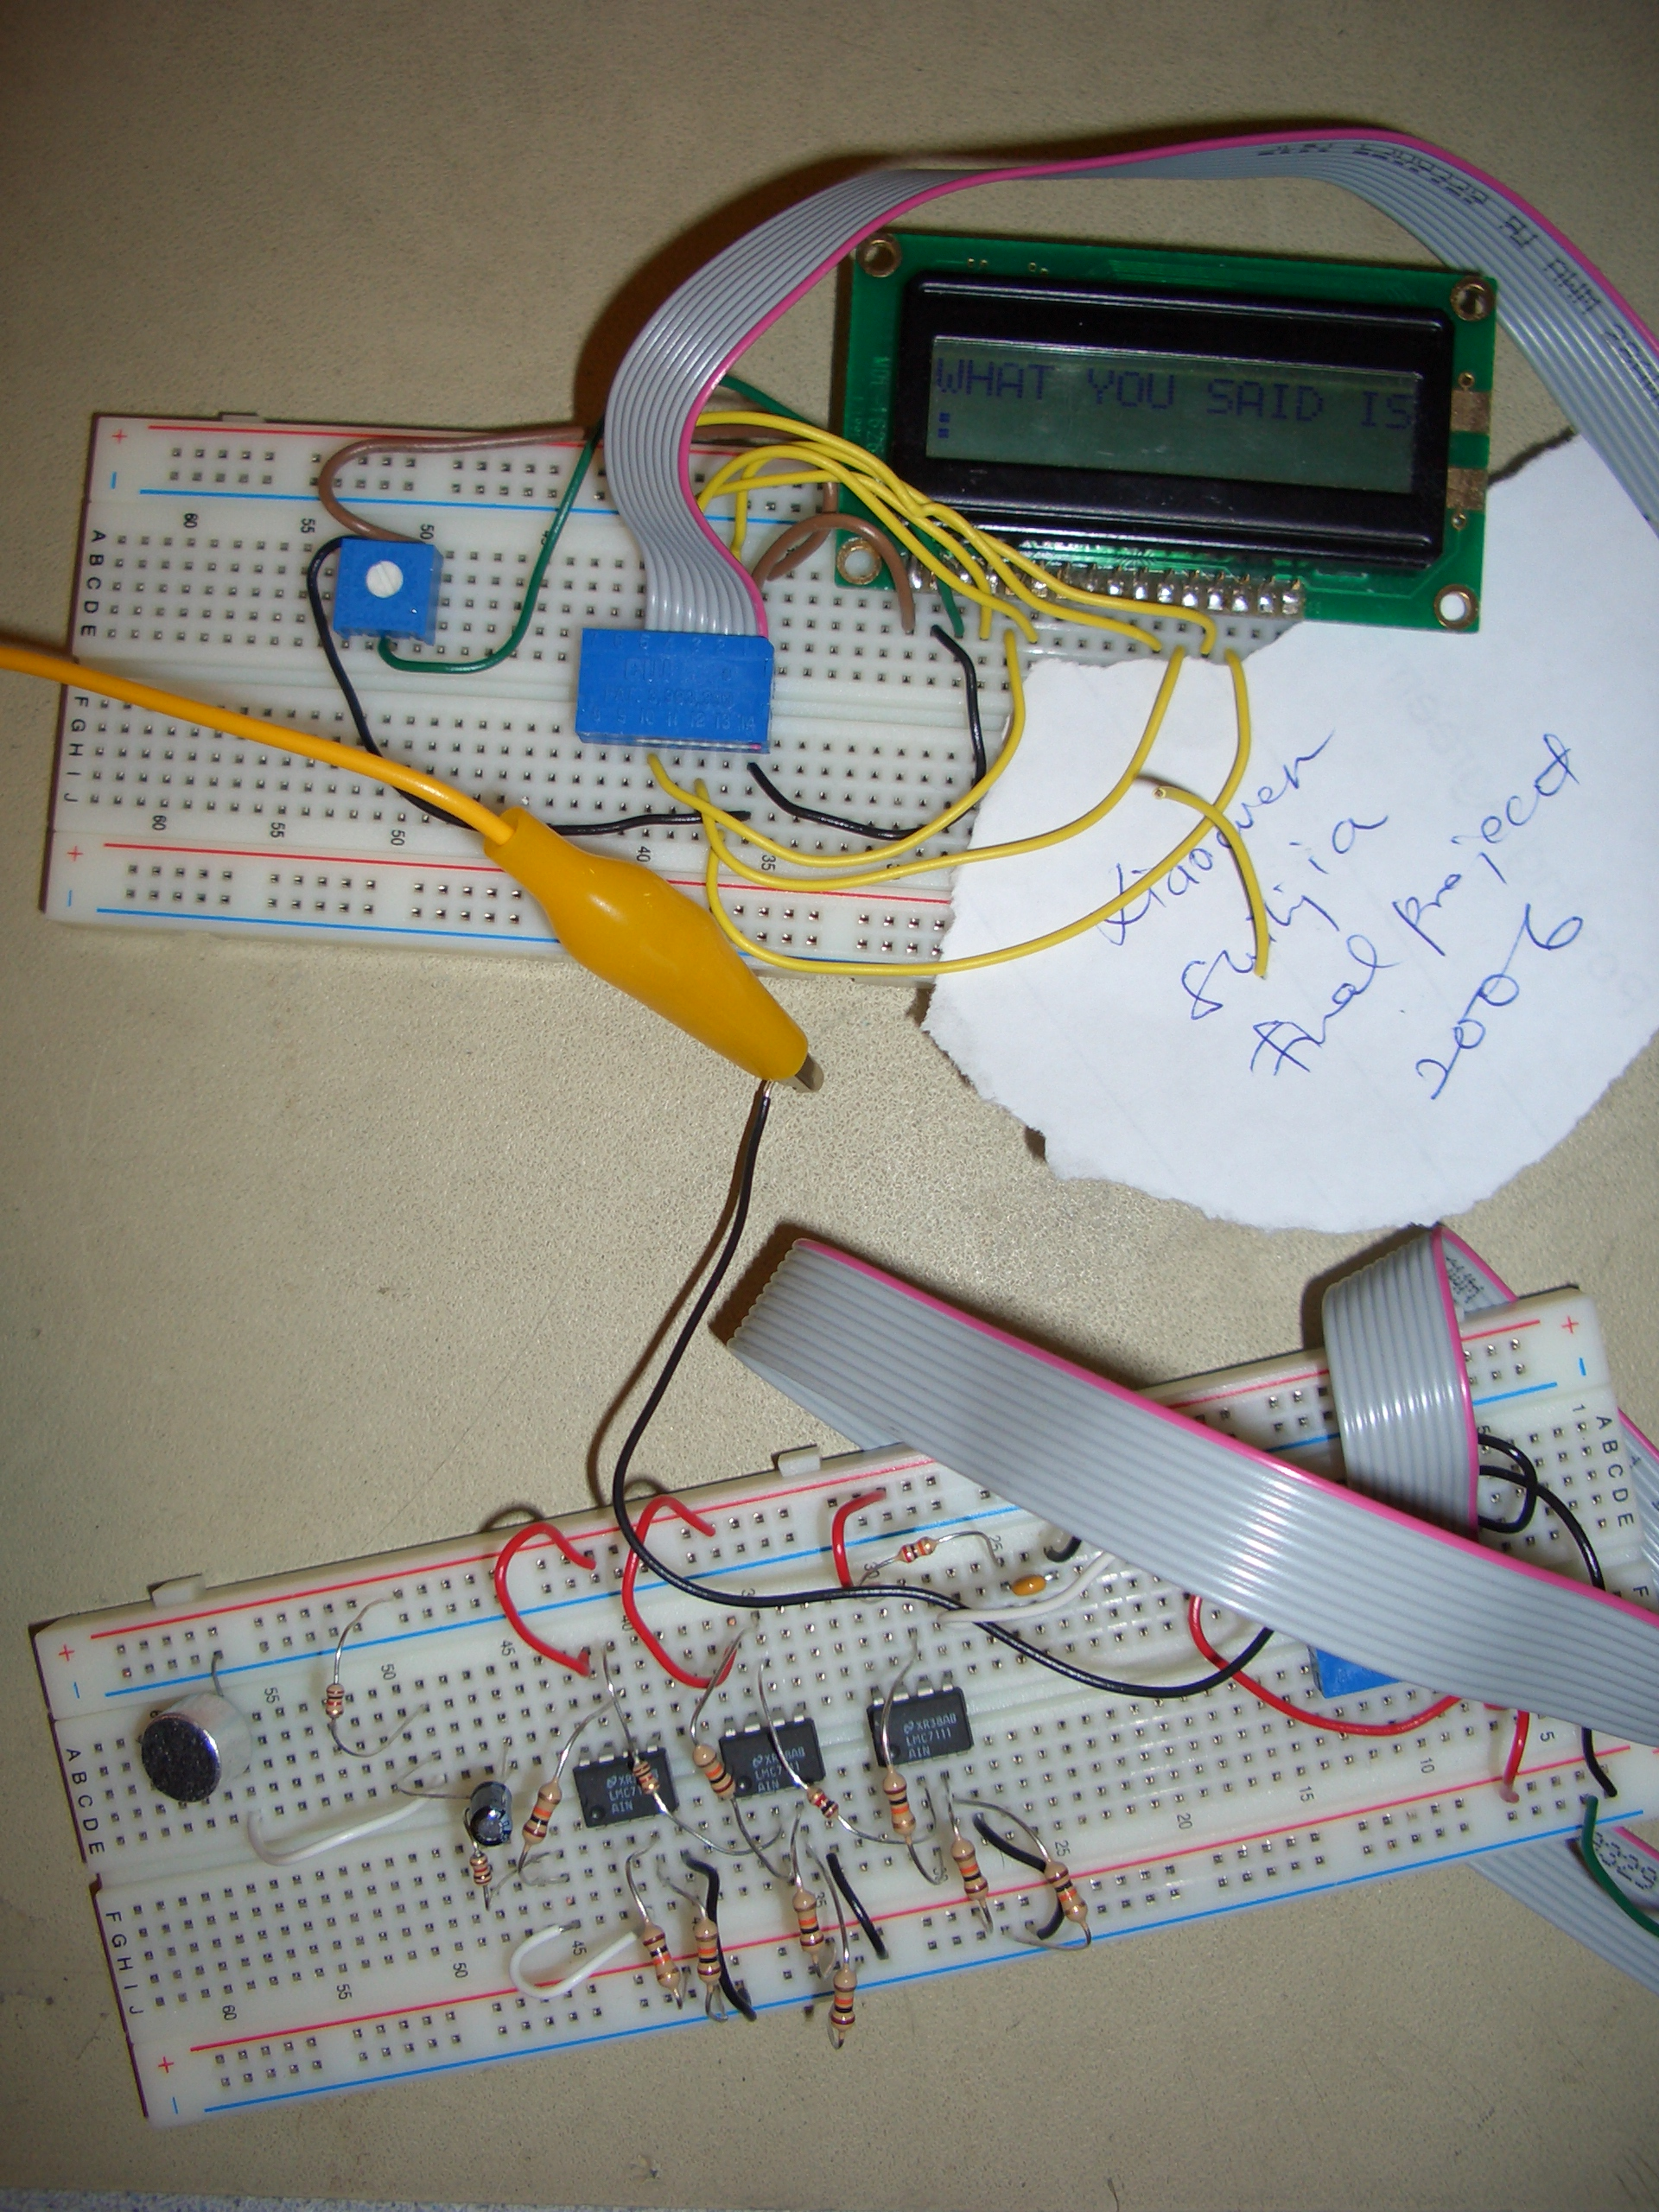 Ece476 Final Project Speech Recognition Security System How To Build Speach Amplifier Voice